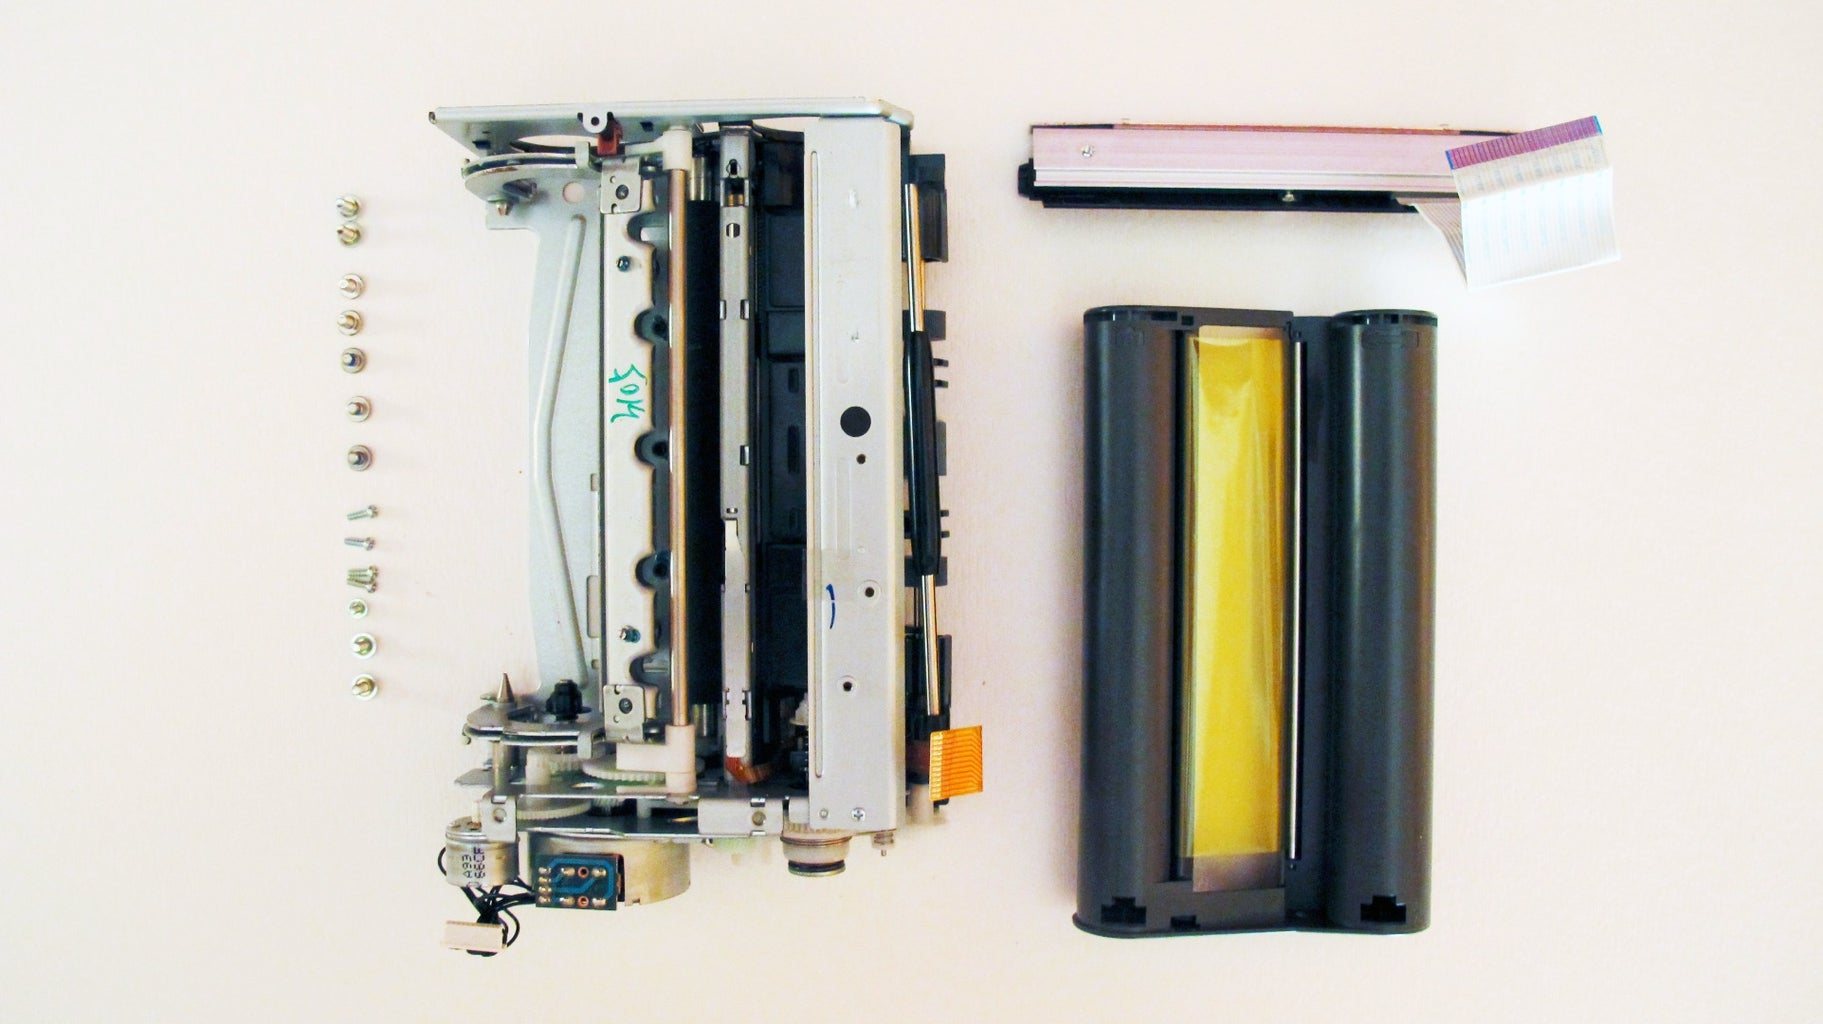 Isolate the Reeling Mechanism From a Compact Photo Printer